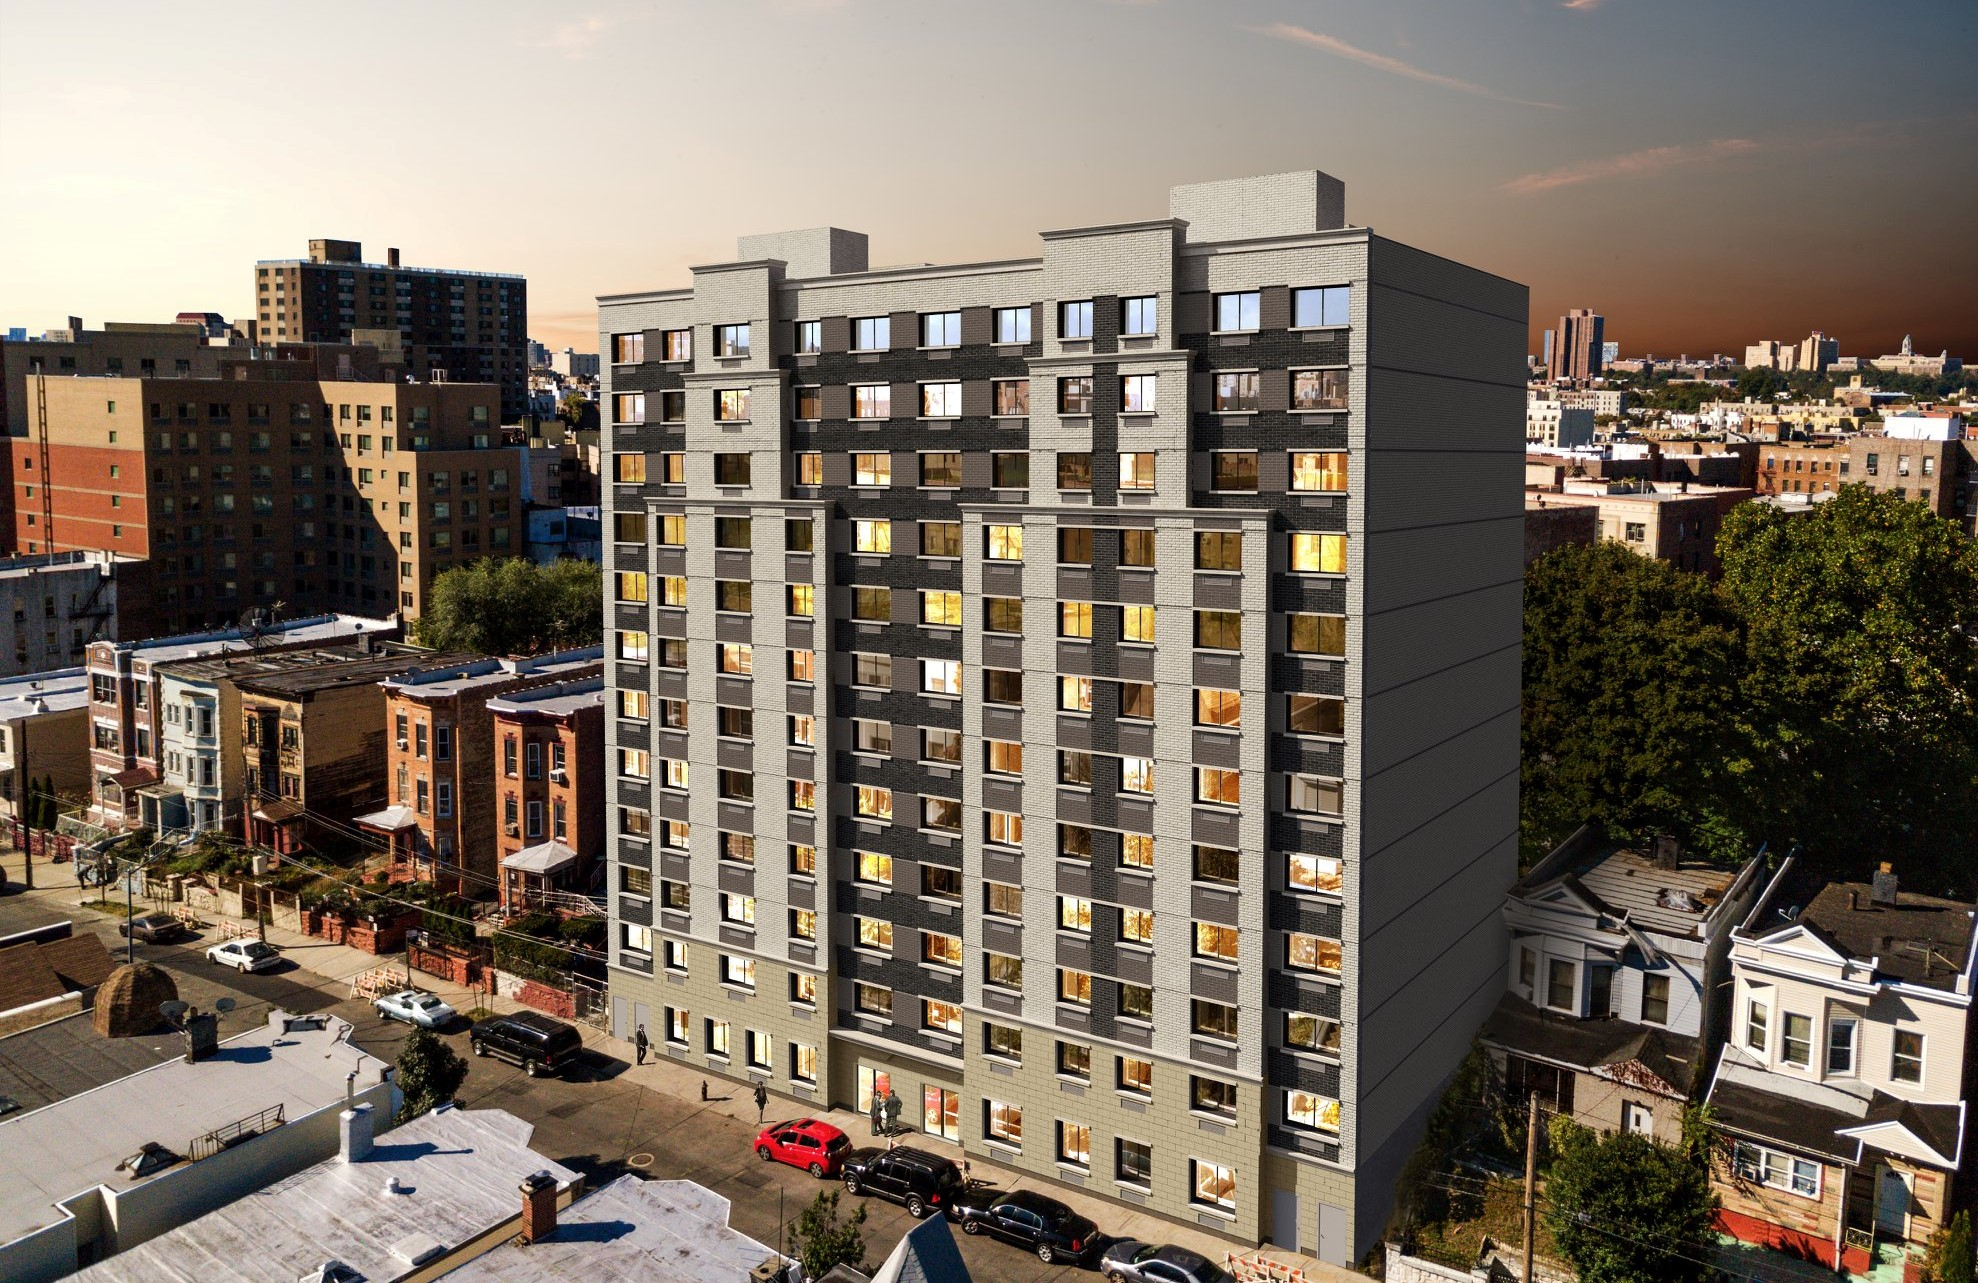 Propco Holdings Selects UA Builders Group Residential Development in The Bronx - NEW YORK CITY — Propco Holdings has selected UA Builders Group for the ground-up development of a residential property located at 2061-2065 Ryer Ave. in the West Bronx.The 12-storybuiding will feature 120,000 square feet of residential space. Badaly & Badaly Architects is serving as architect for the project.